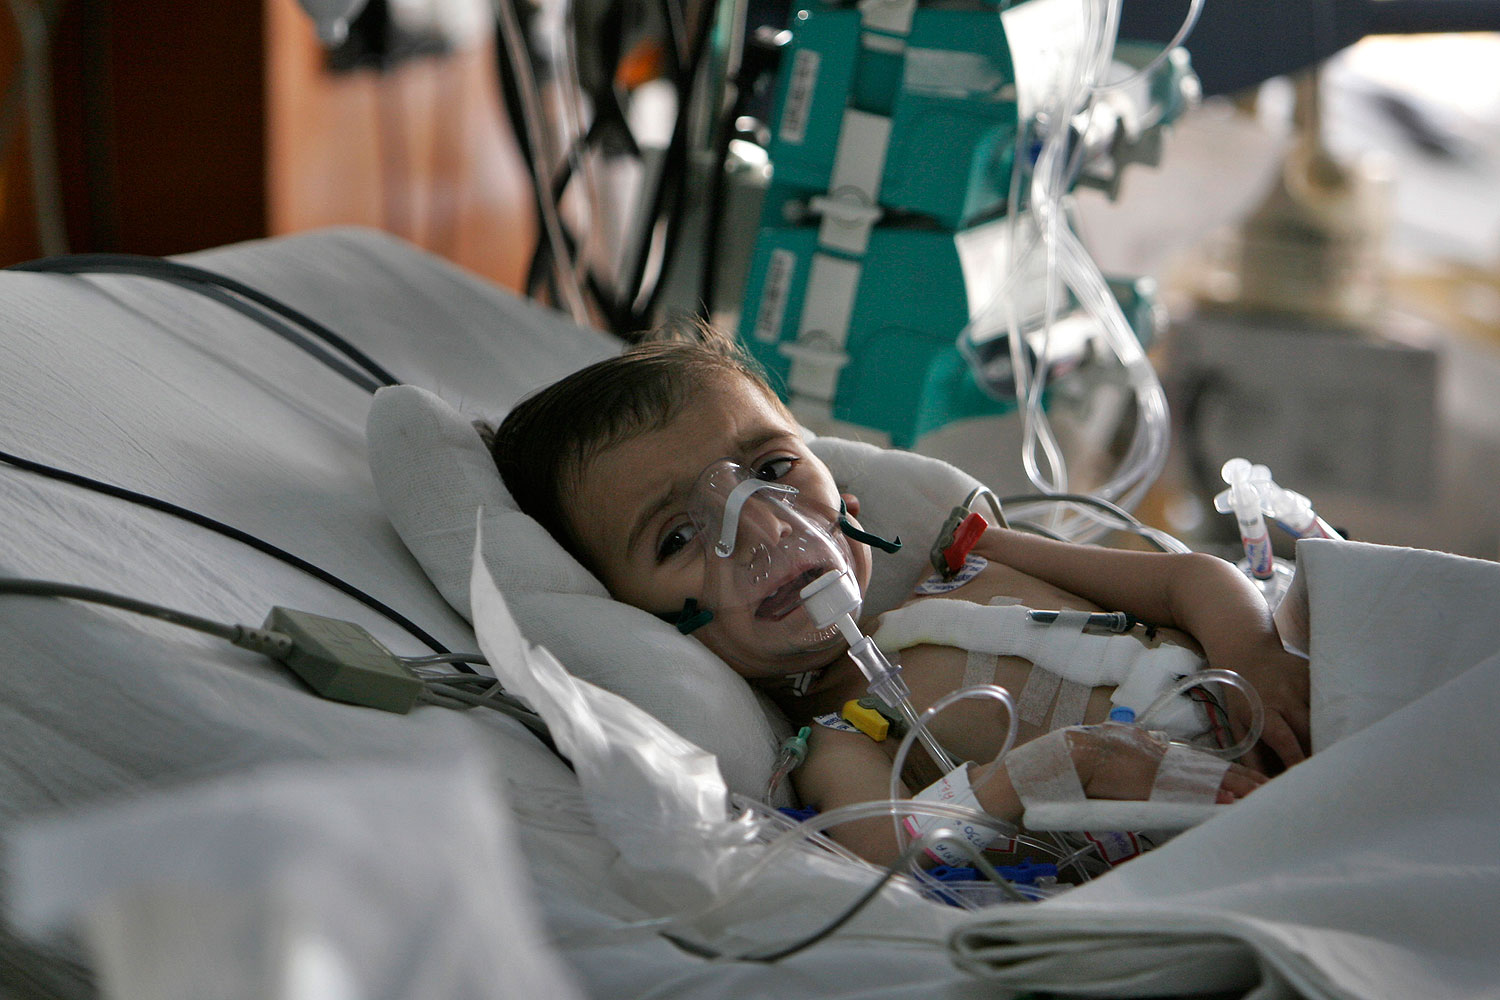 An Afghan child Leema, 17 months, recovers from heart surgery at Narayana Hrudayalaya hospital in Bangalore, India, in this file photo from 2008